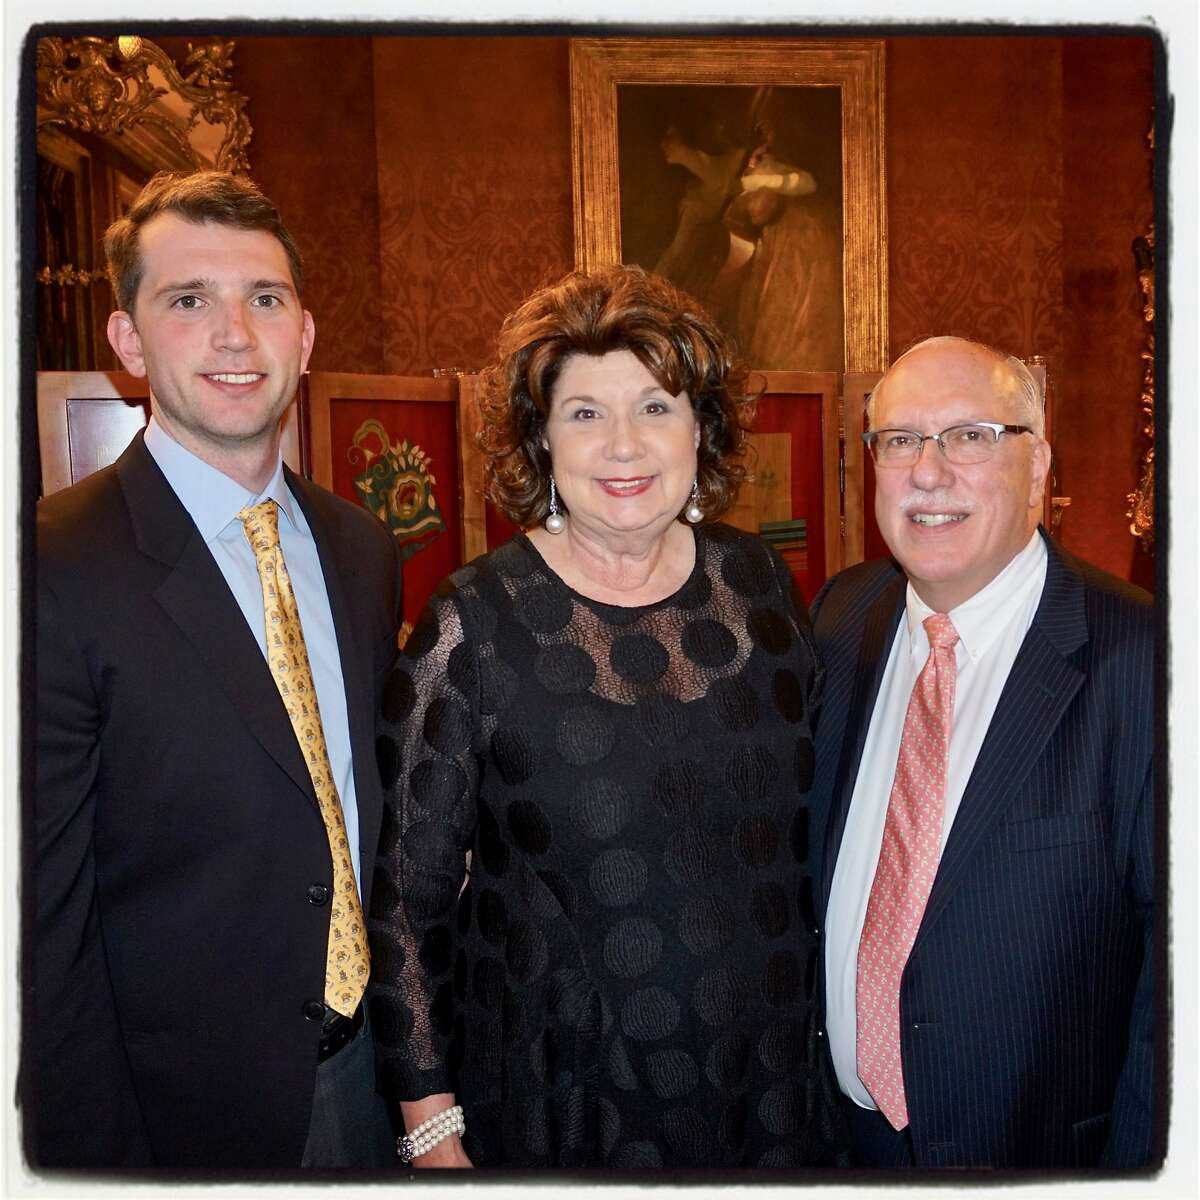 Gordon Glogau (left) with his parents, Pam and Dr. Richard Glogau, at the Snuggly Soiree. March 26, 2018.